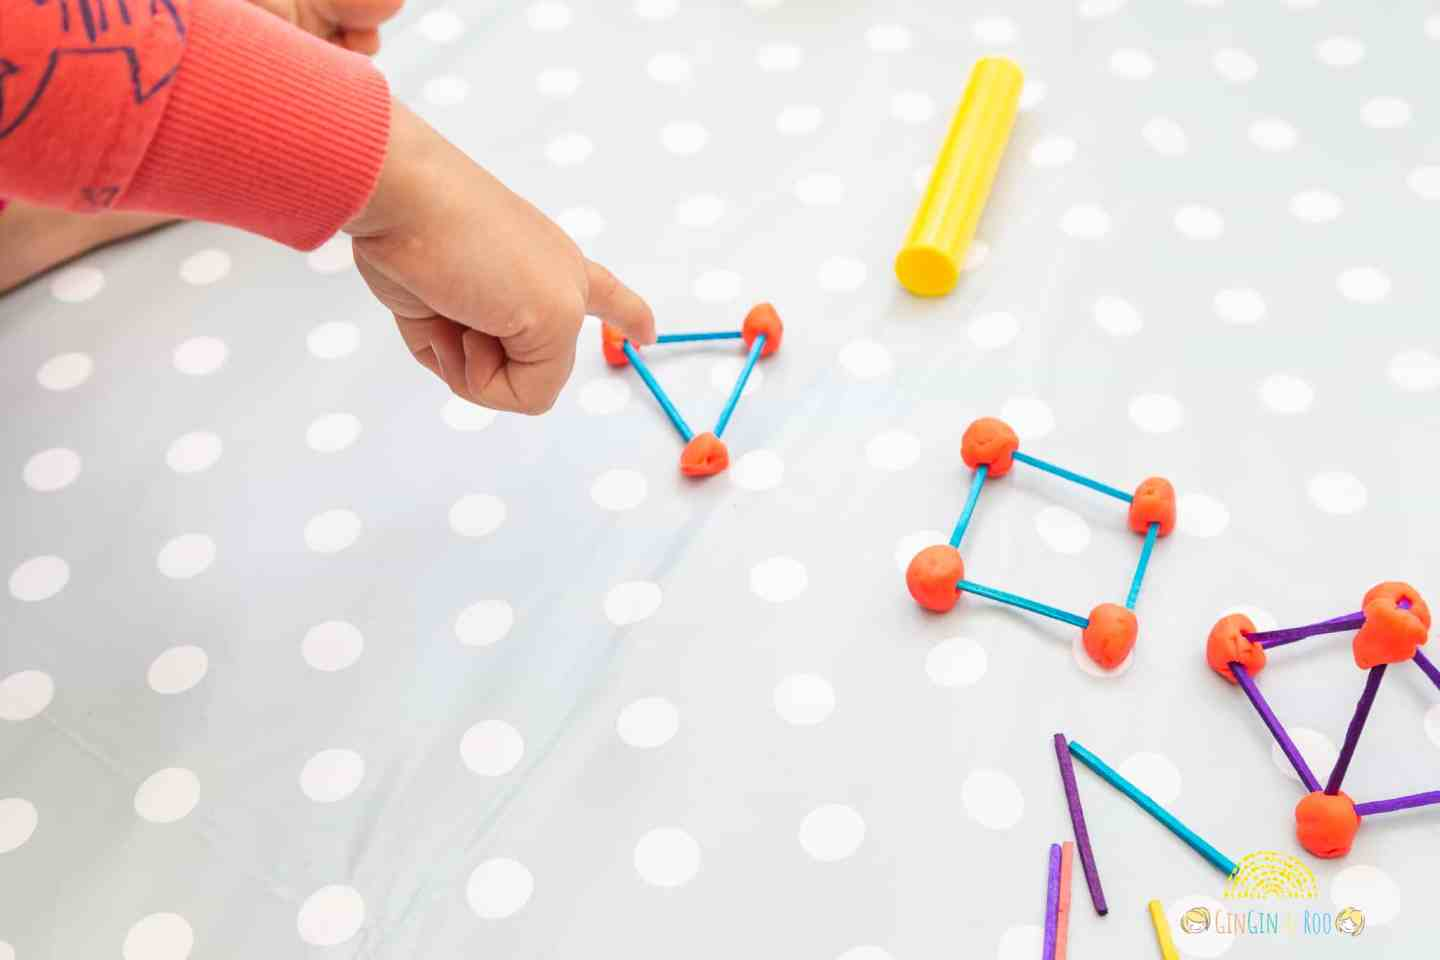 Making Matchstick Shapes. A fun maths activity from GinGin & Roo #toddleractivity #toddlereducation #toddlerlearn